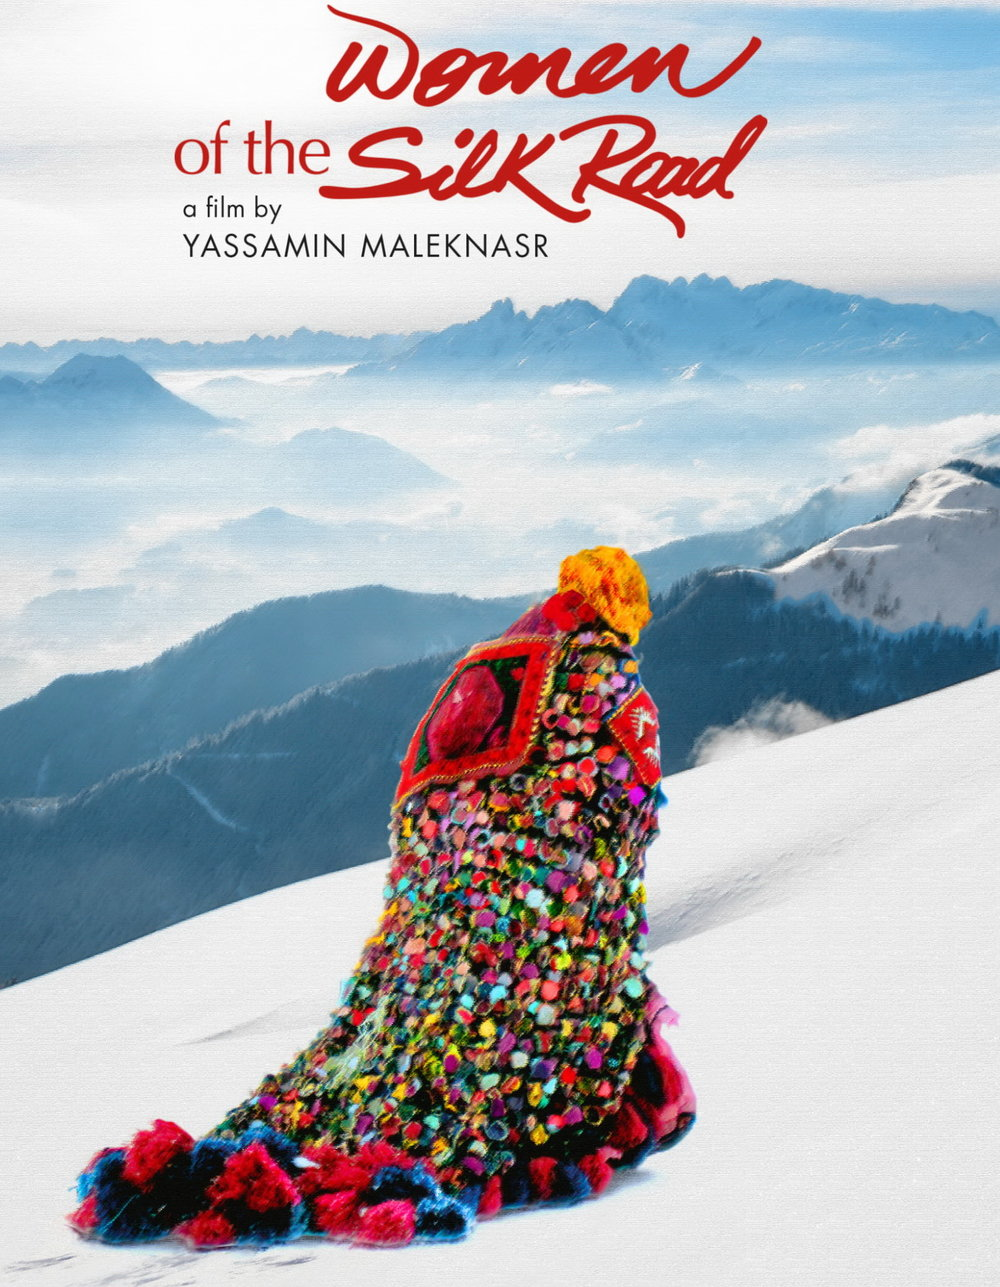 Women of the Silk Road - Official Image